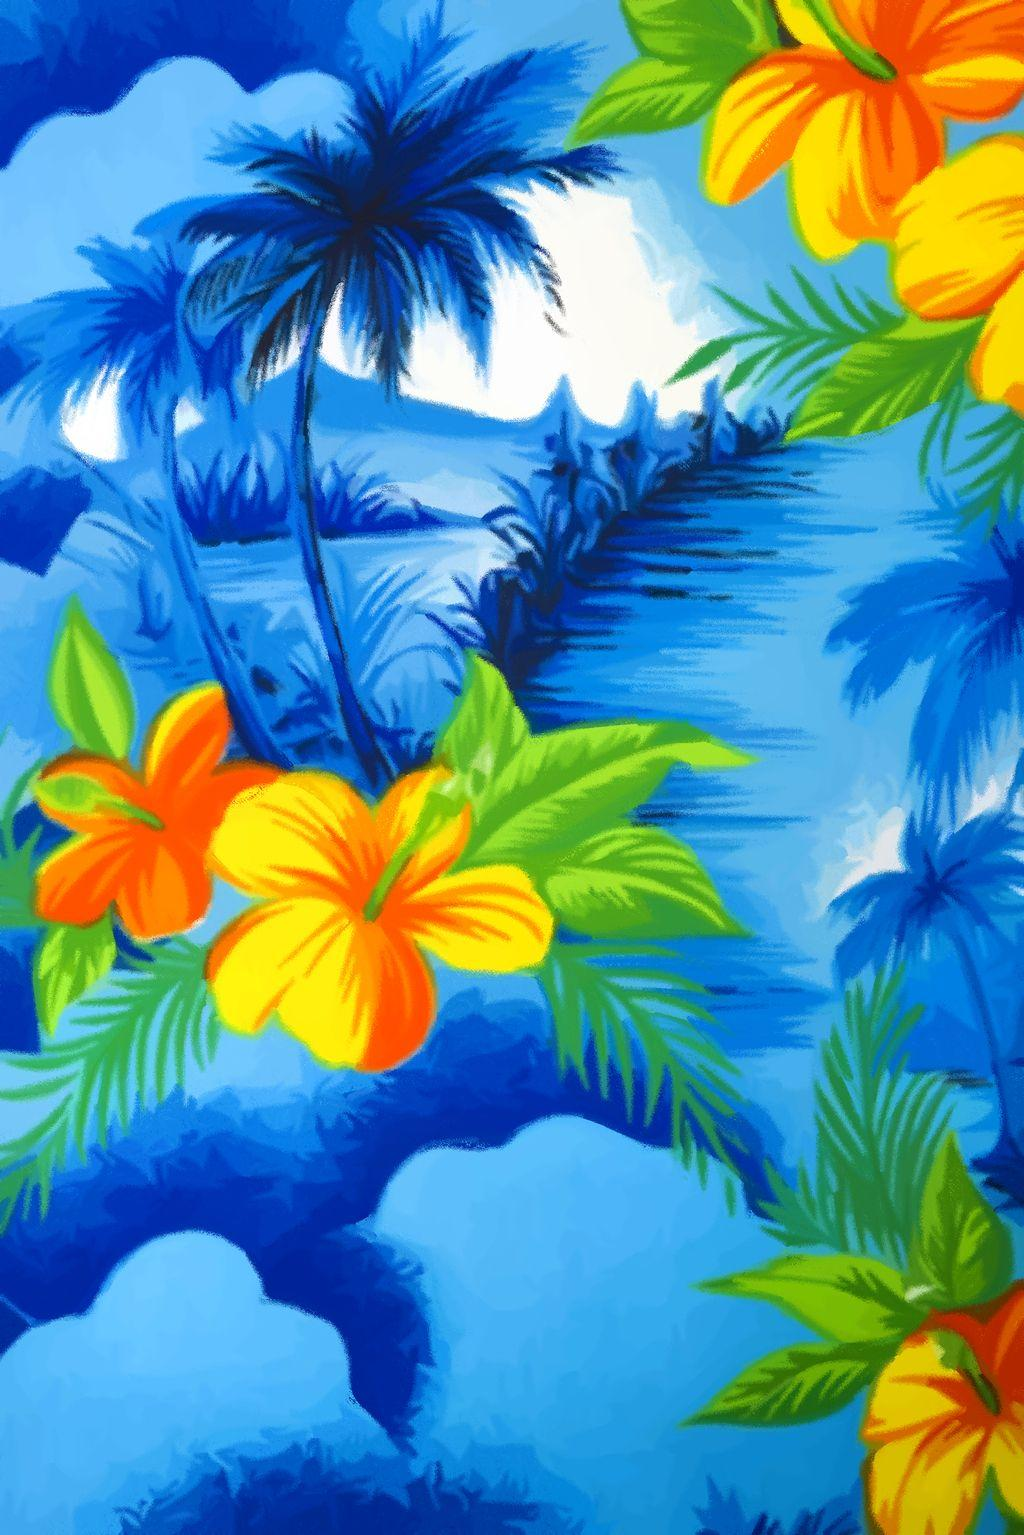 Hawaiian Flowers Wallpaper Backgrounds - WallpaperSafari